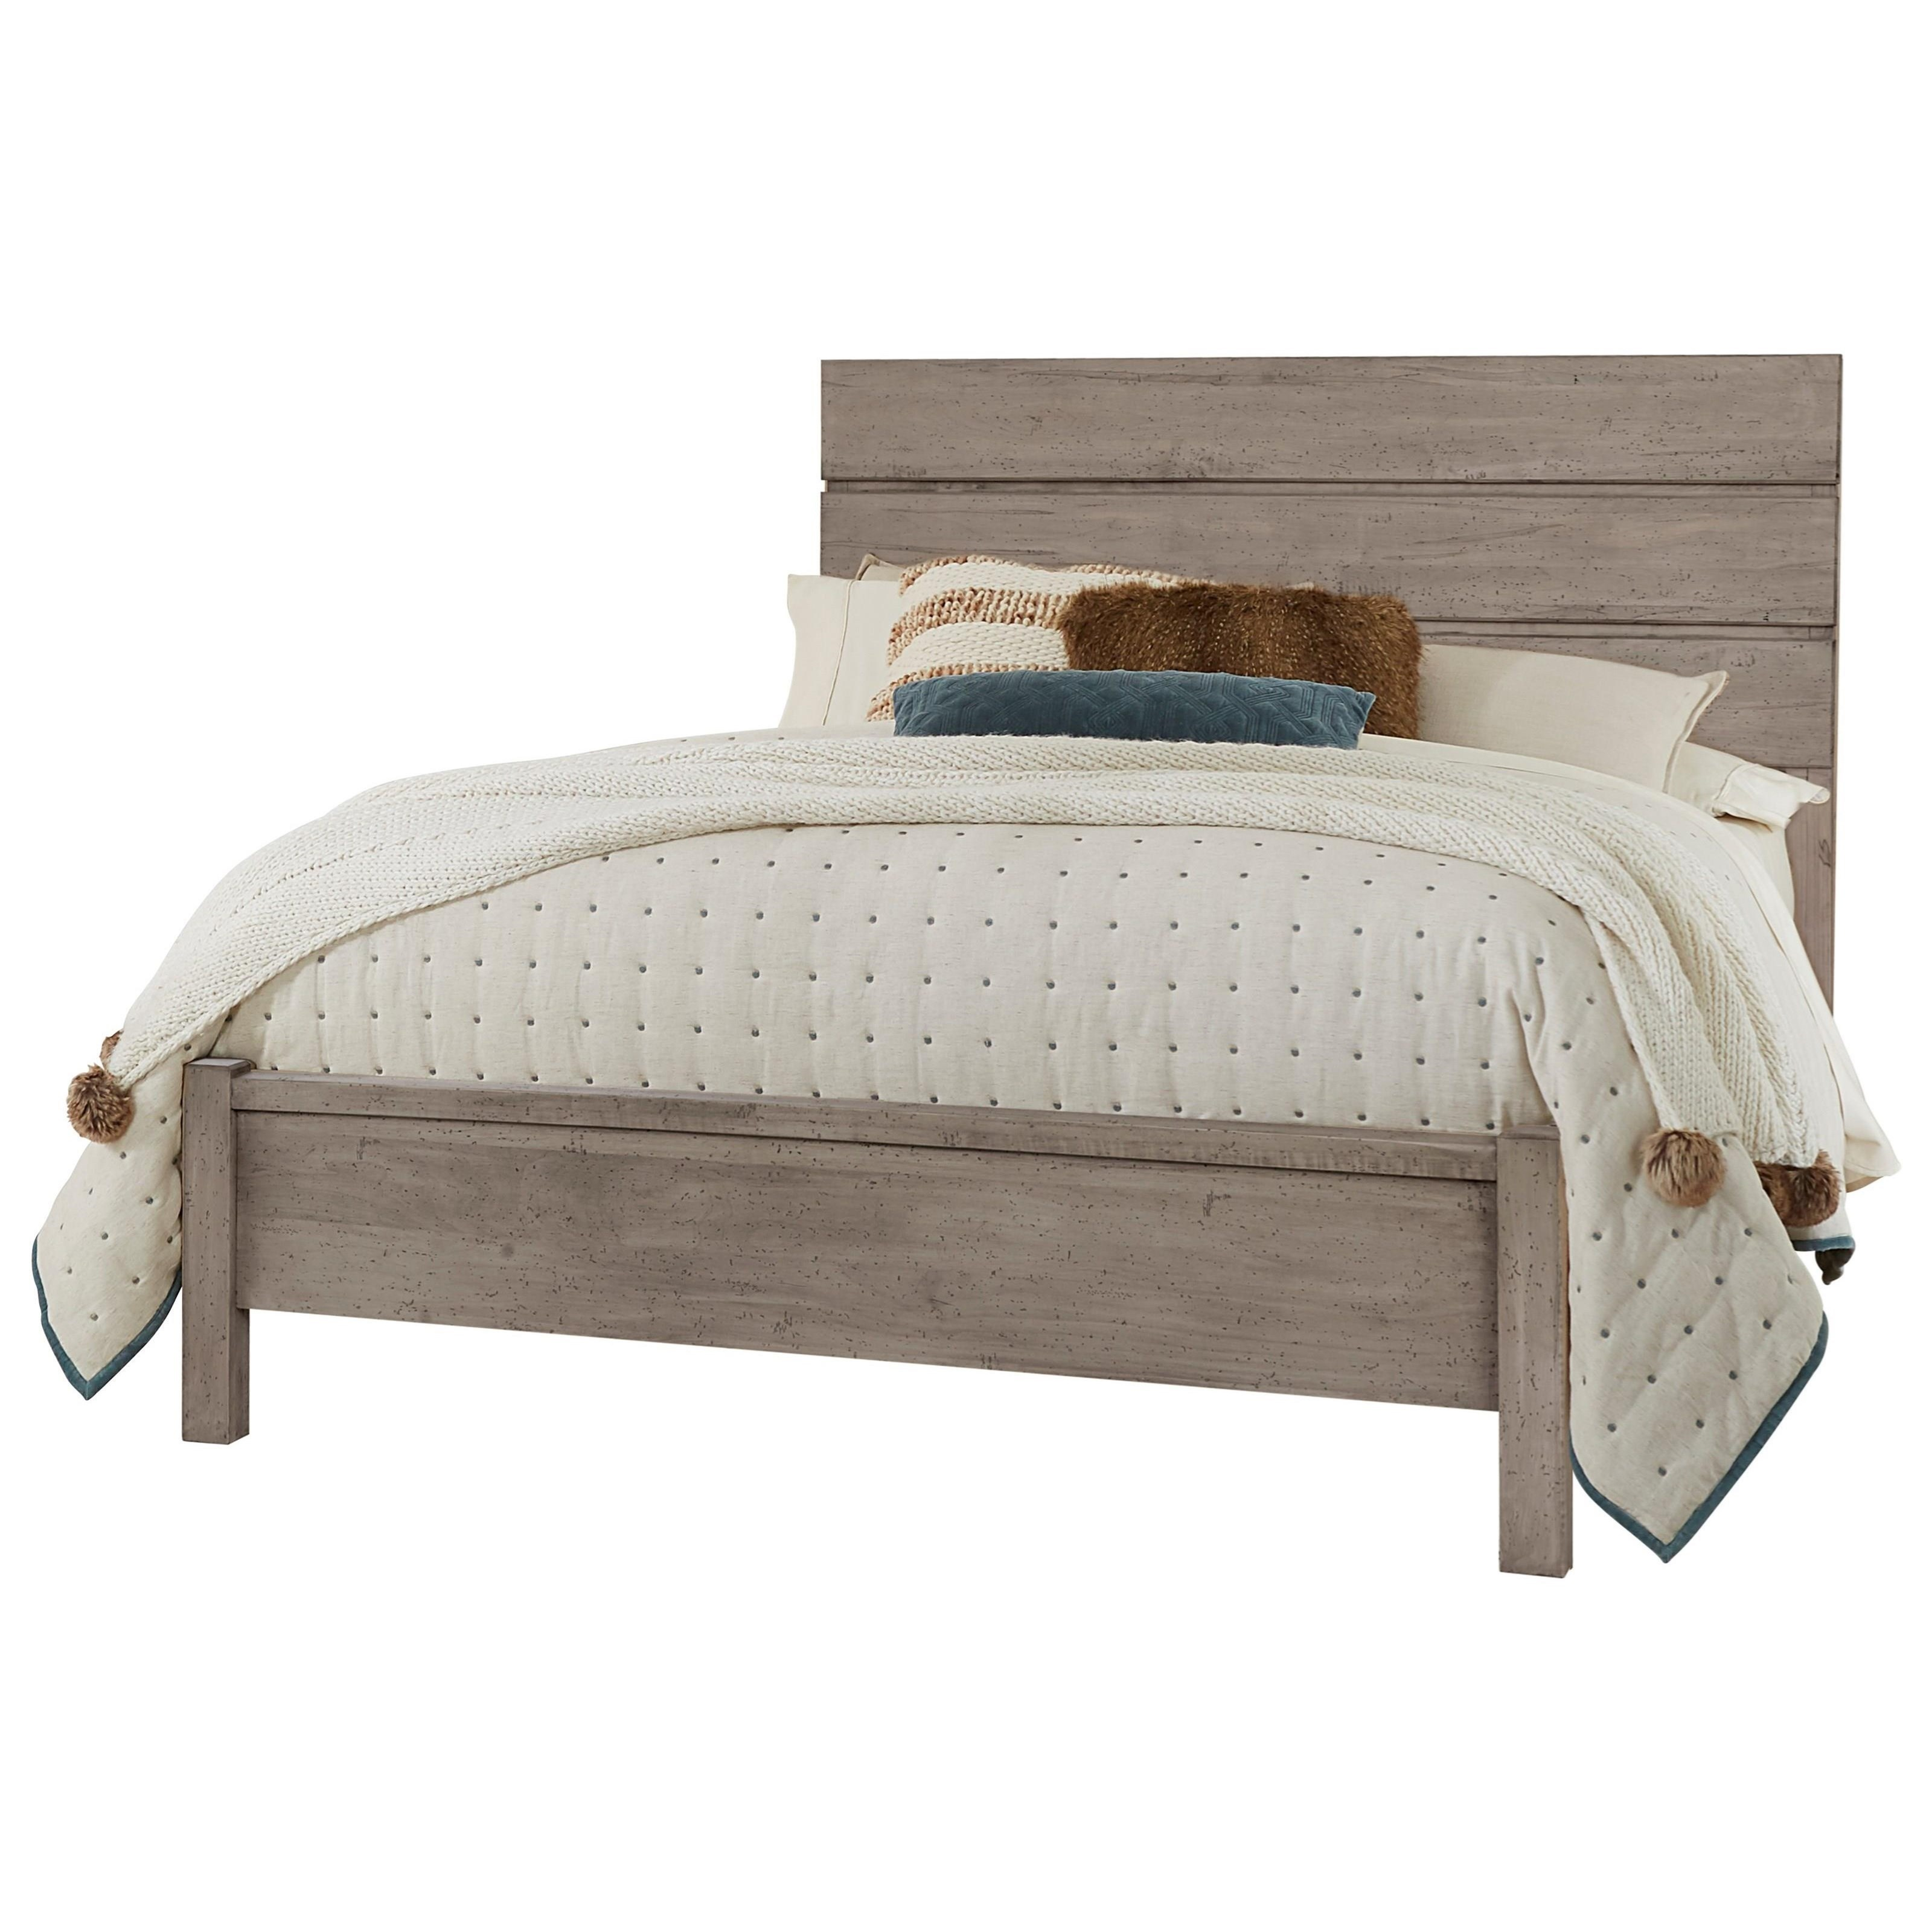 Touche King Platform Bed  by Centennial Solids at Rooms and Rest